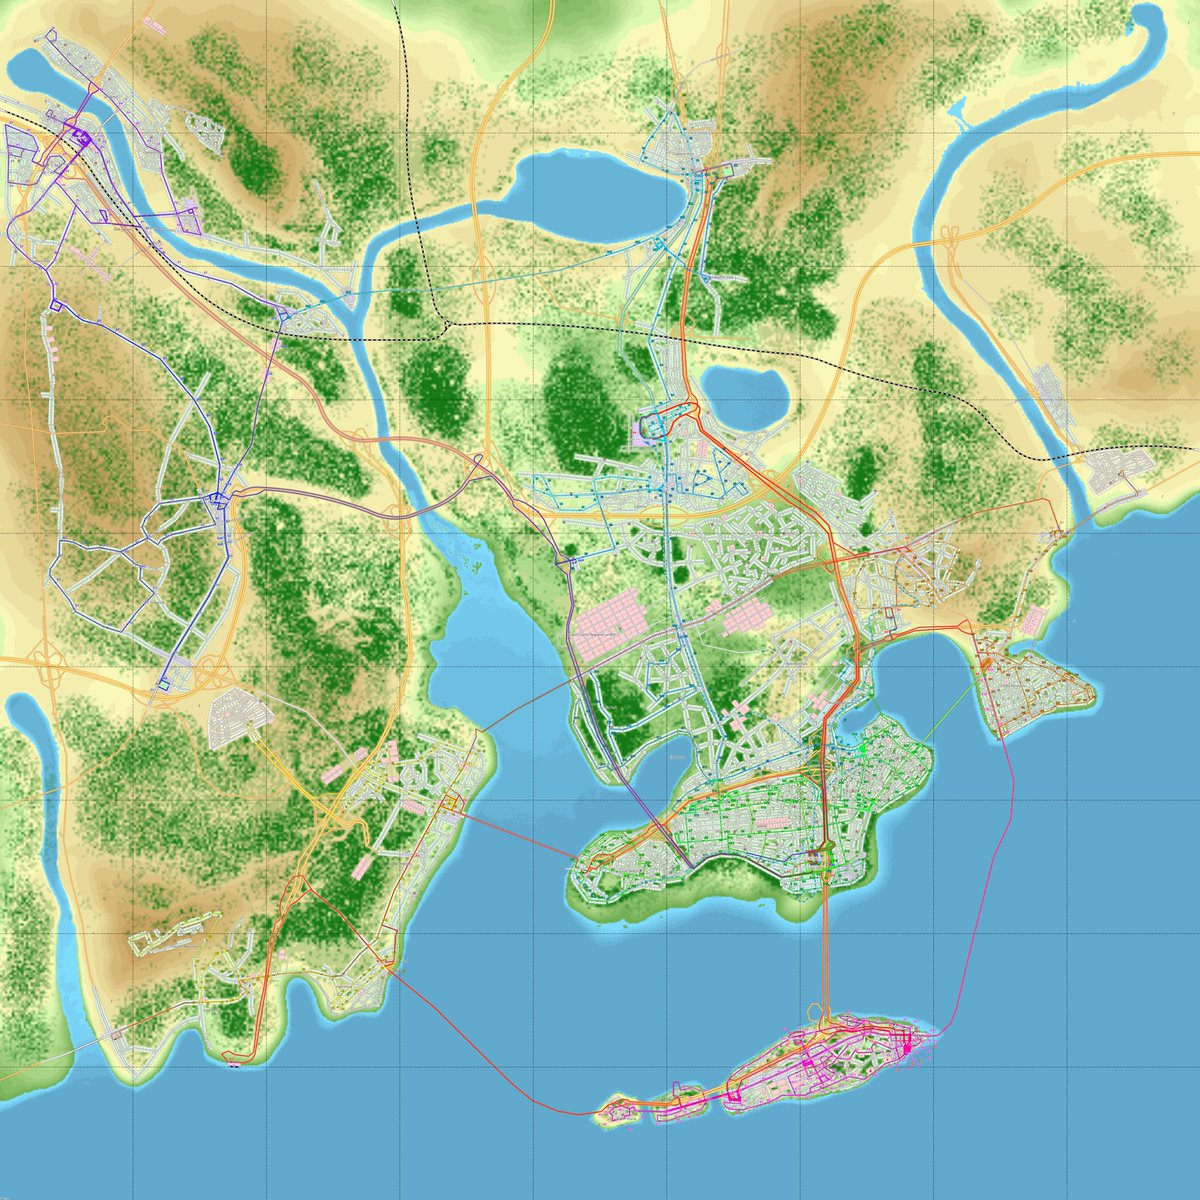 Cities skylines on twitter ever wish you could view your creations 0 replies 0 retweets 1 like gumiabroncs Image collections